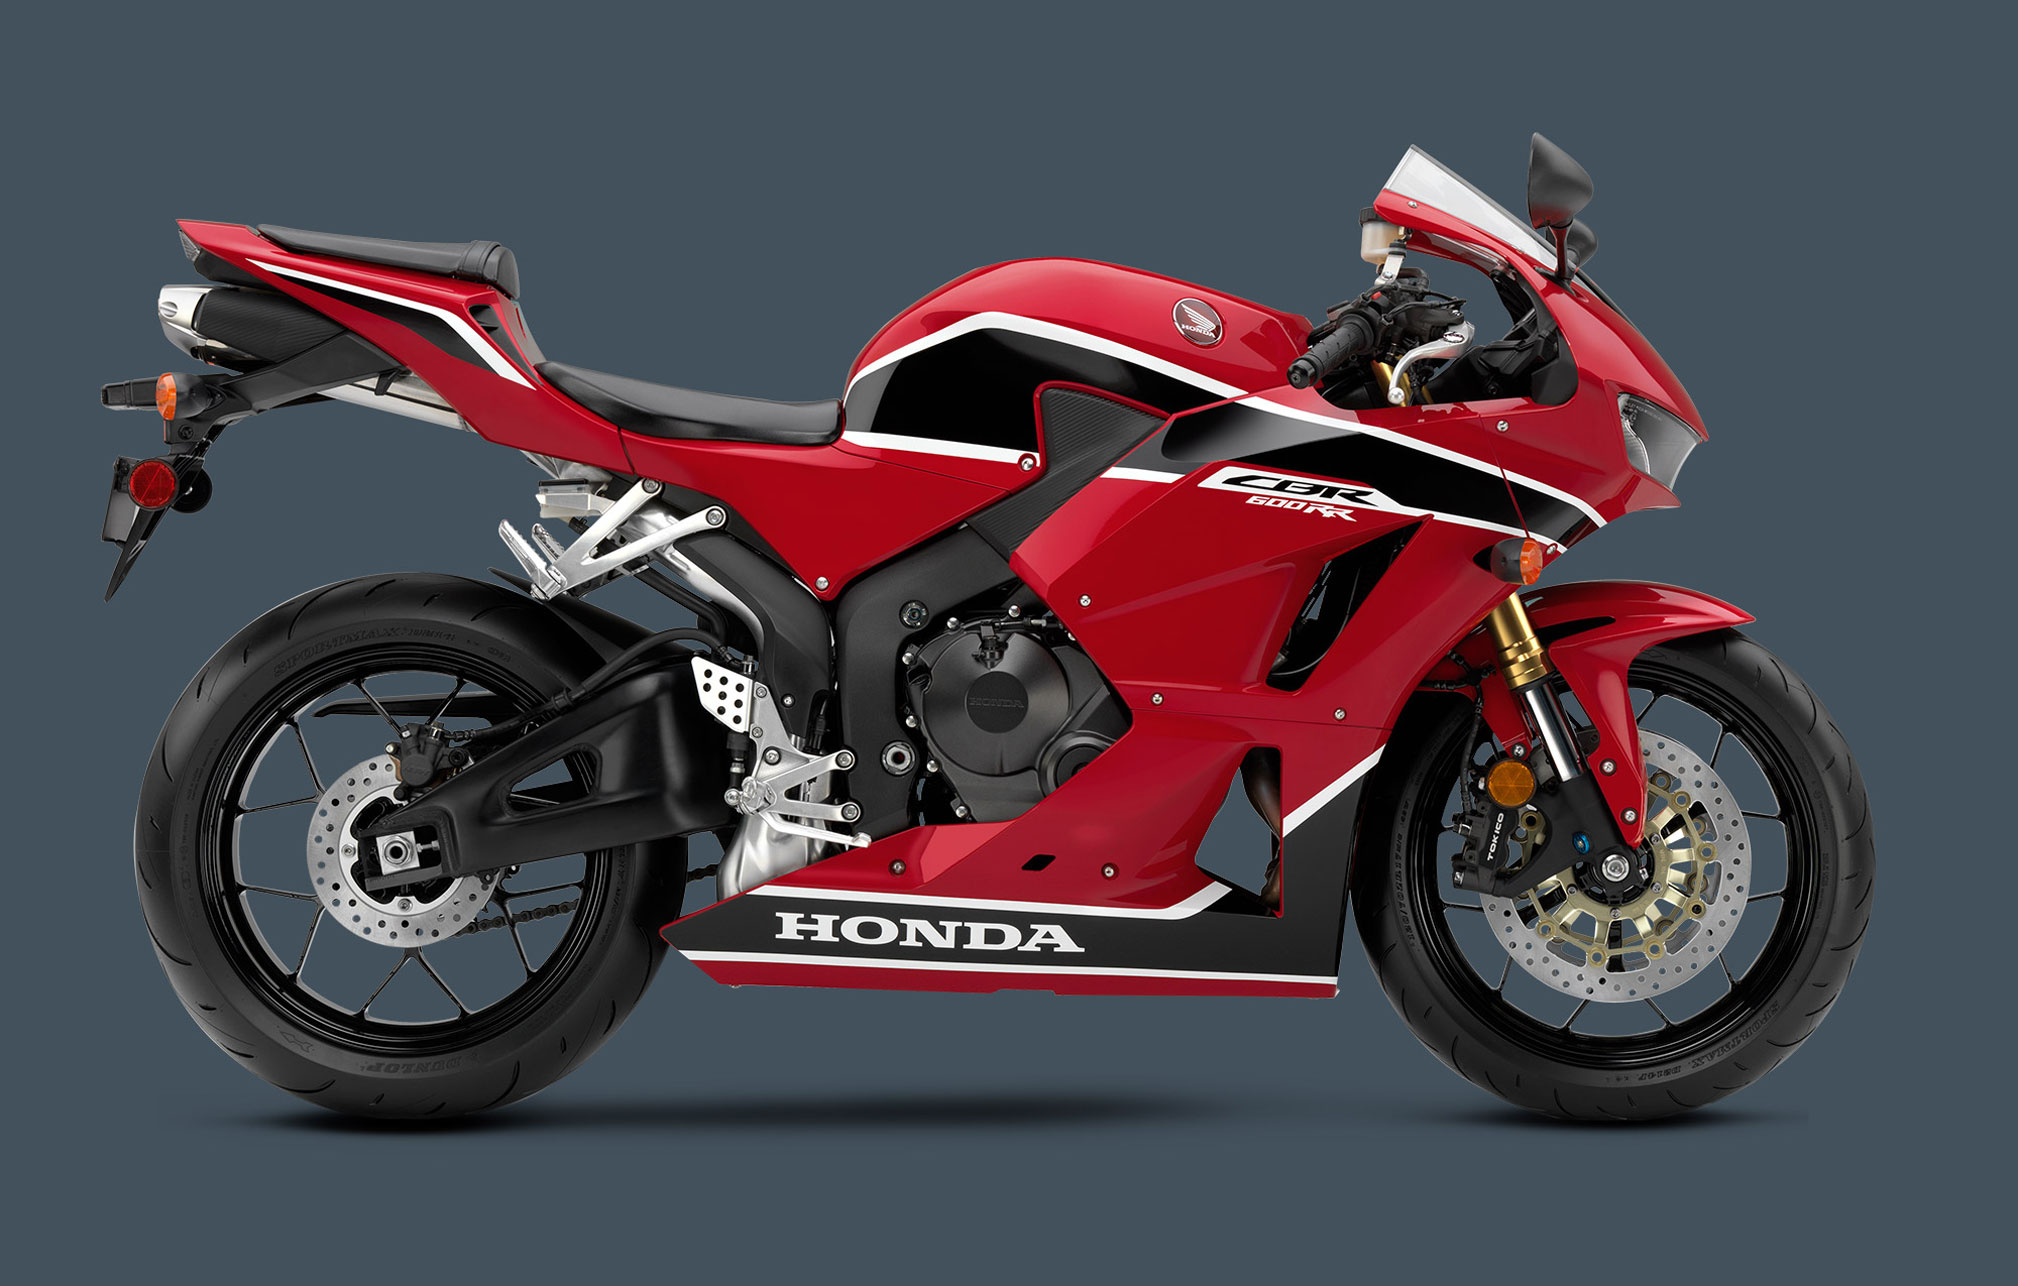 2019 Honda Cbr 600rr Launch On Cars Unveil This November Very Likely